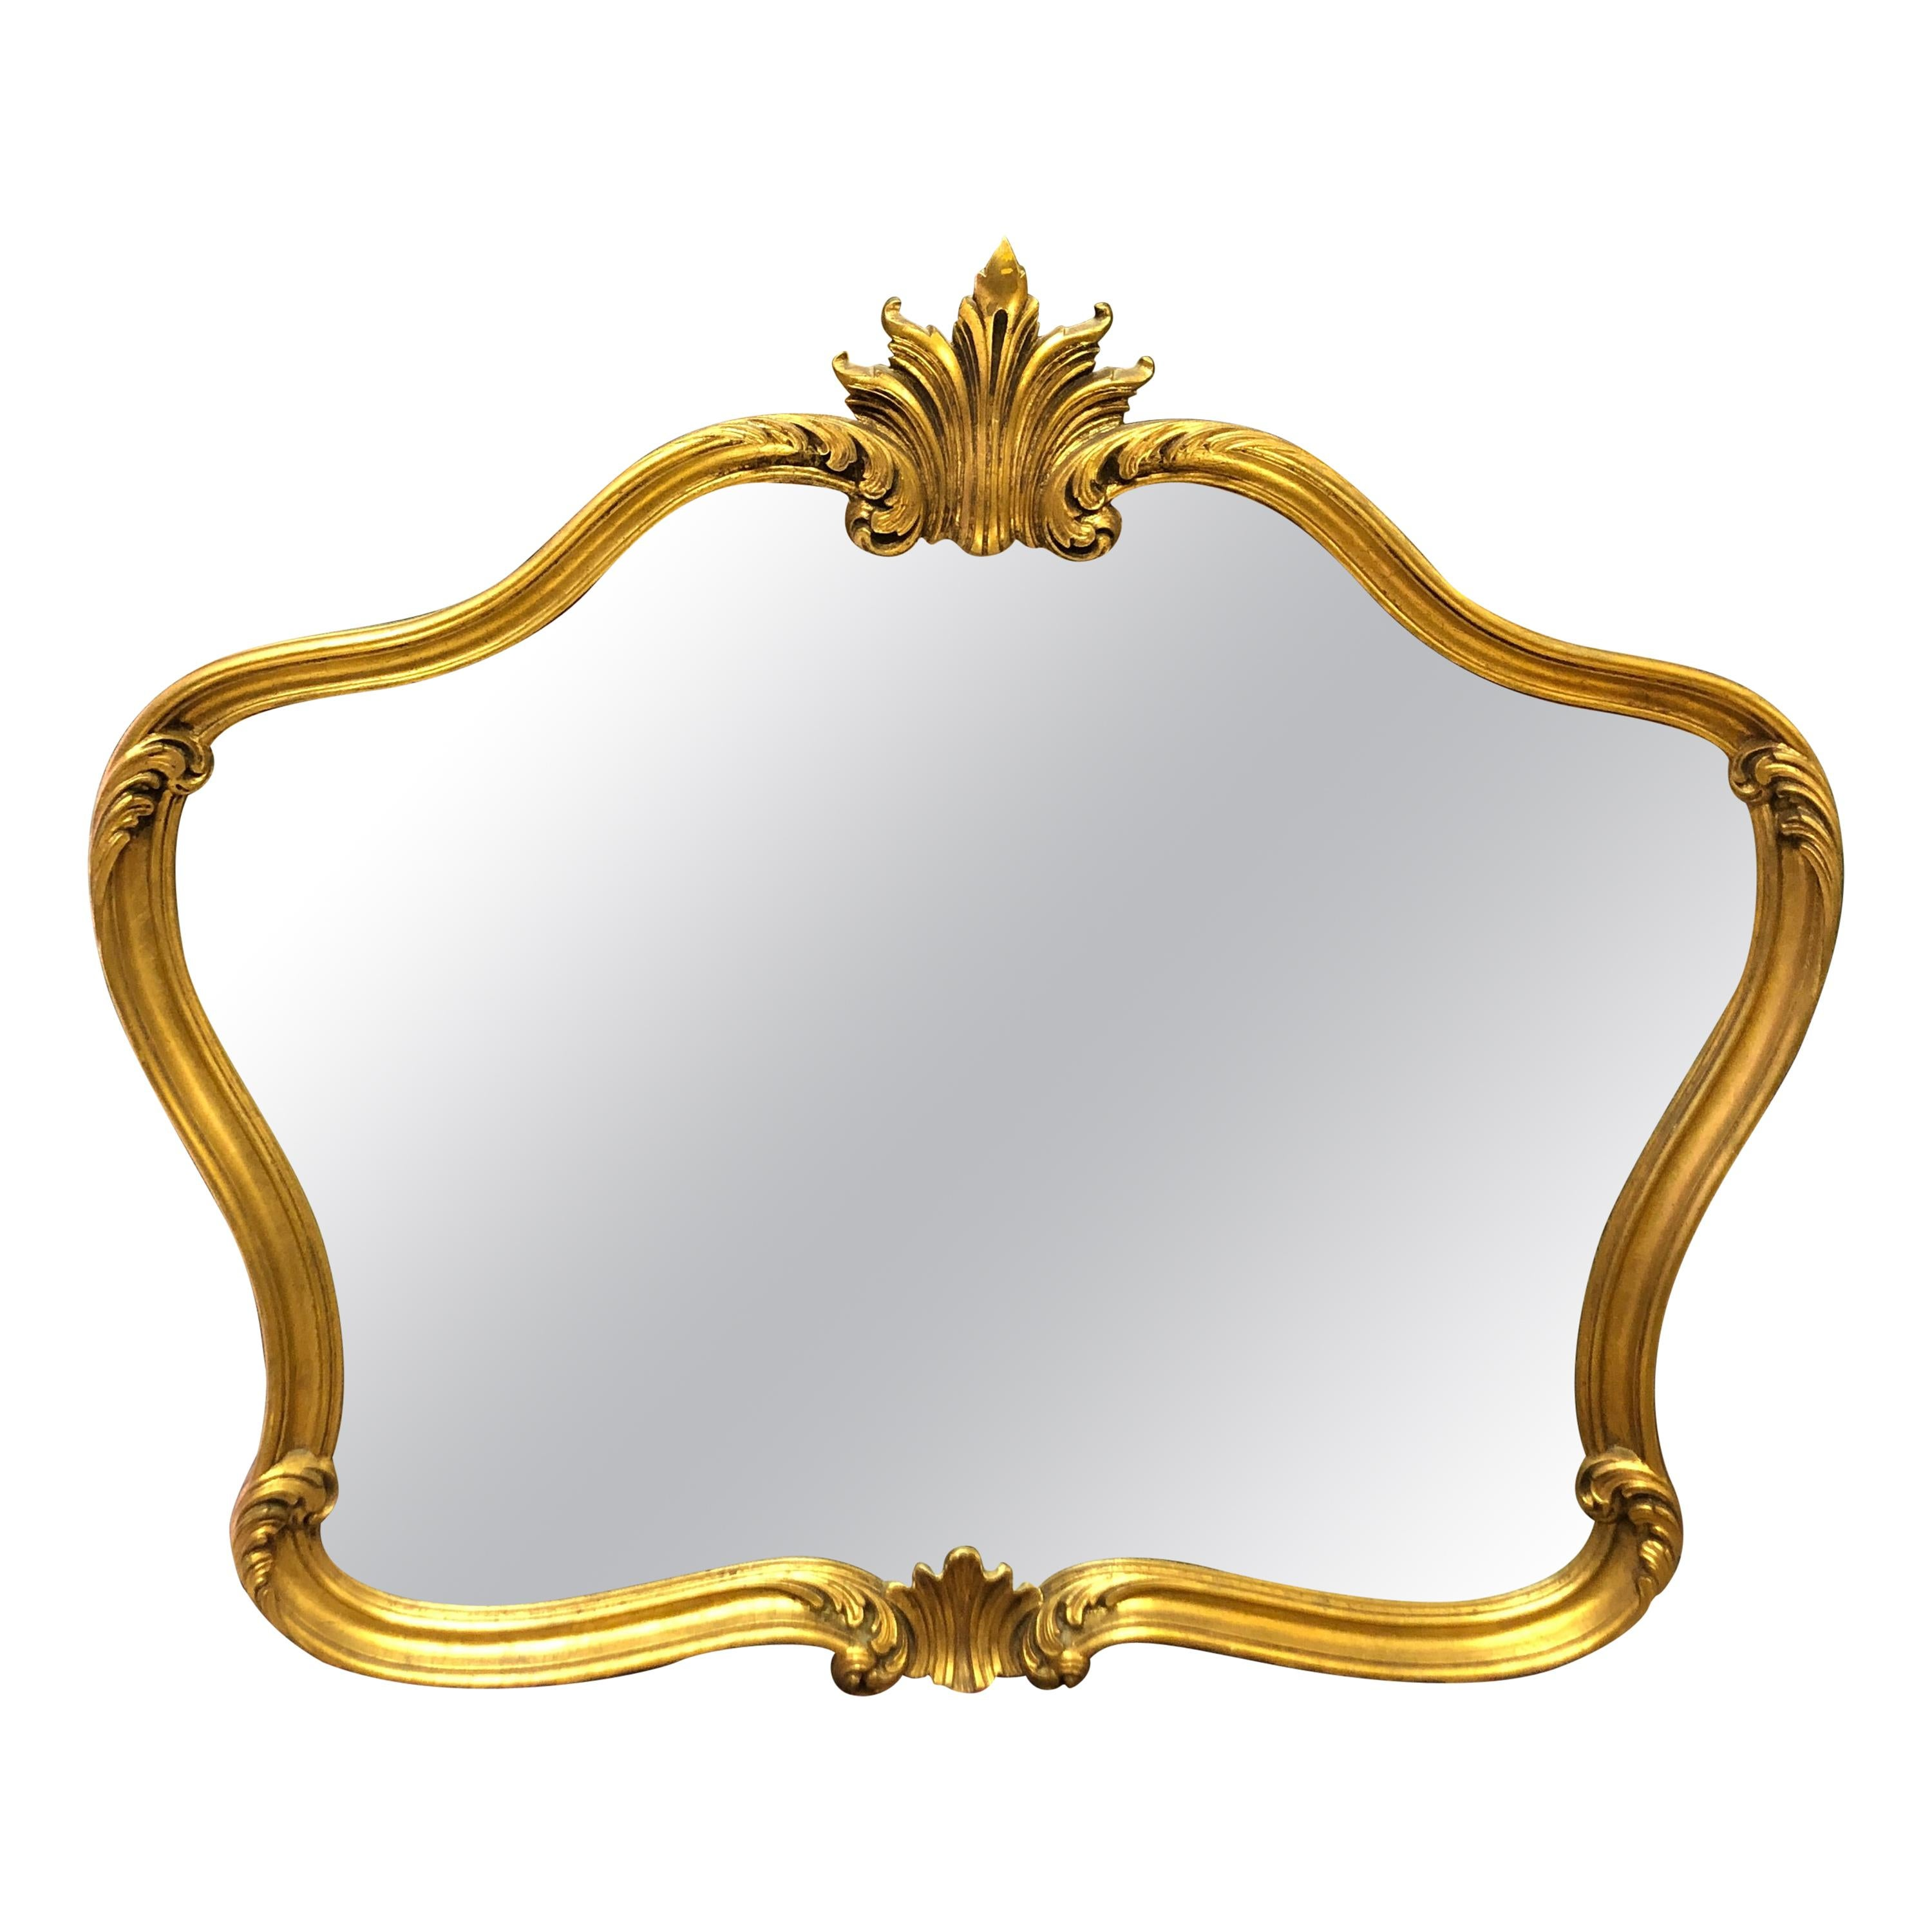 20th Century French Hand Carved Giltwood Mirror in Louis XV Style